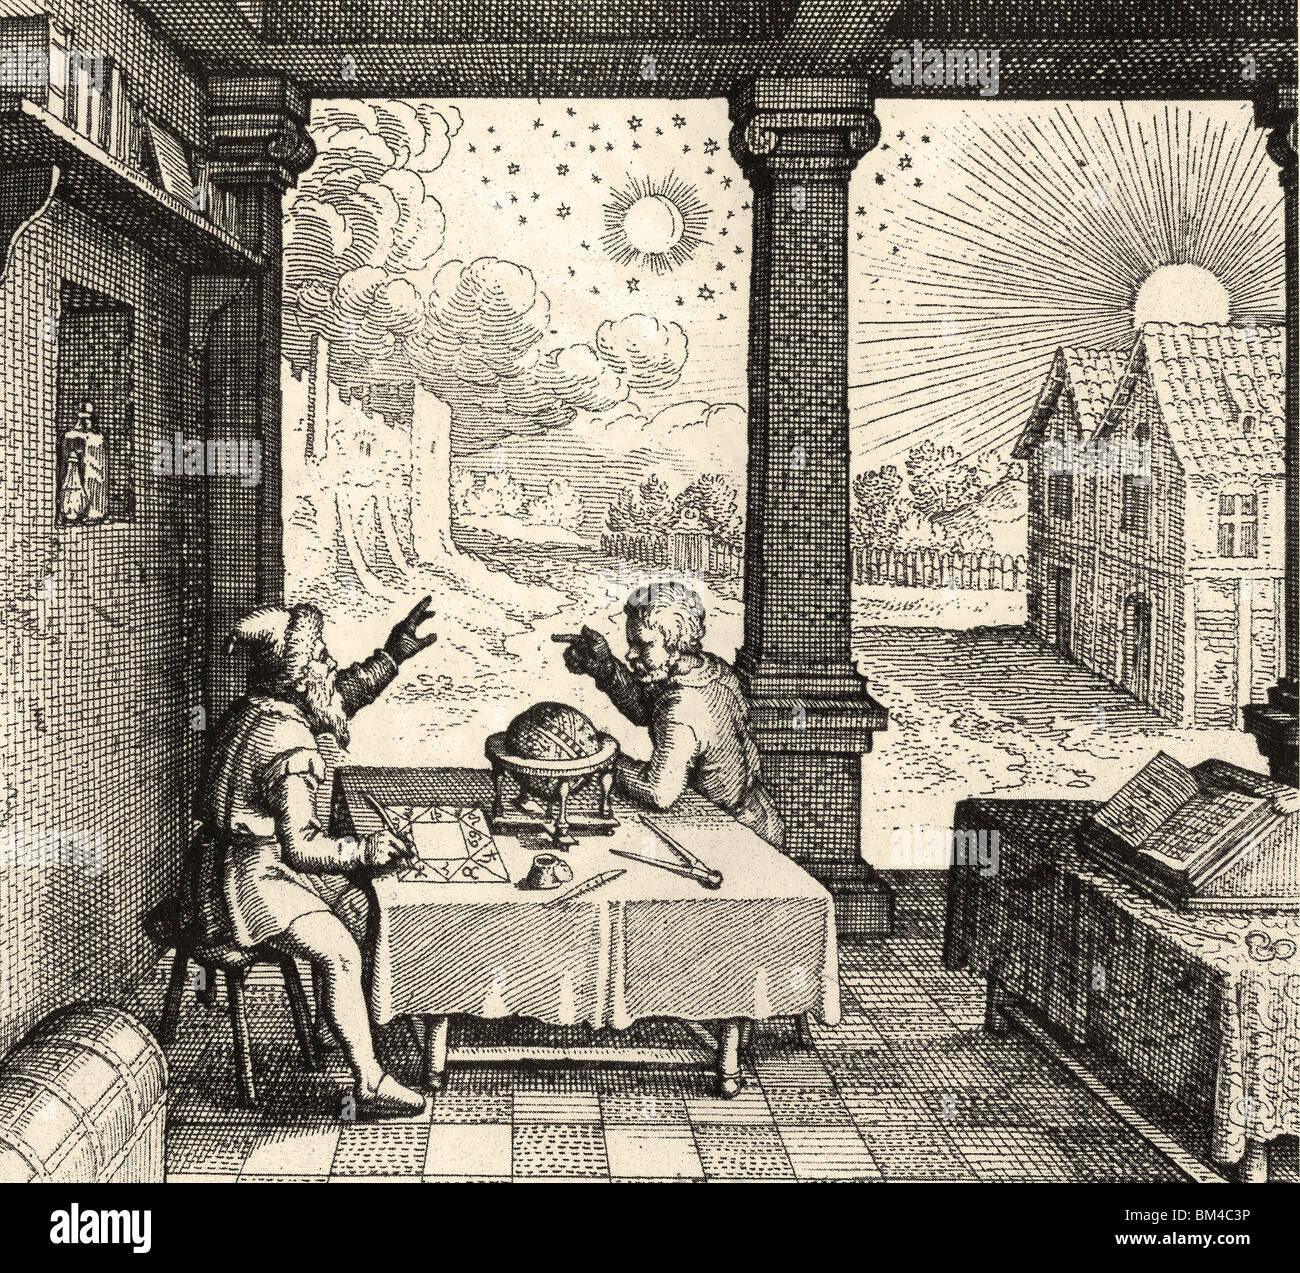 ASTROLOGY - preparing a horoscope from Robert Fludd's Ultriusque cosmi..historia published between 1617 and - Stock Image